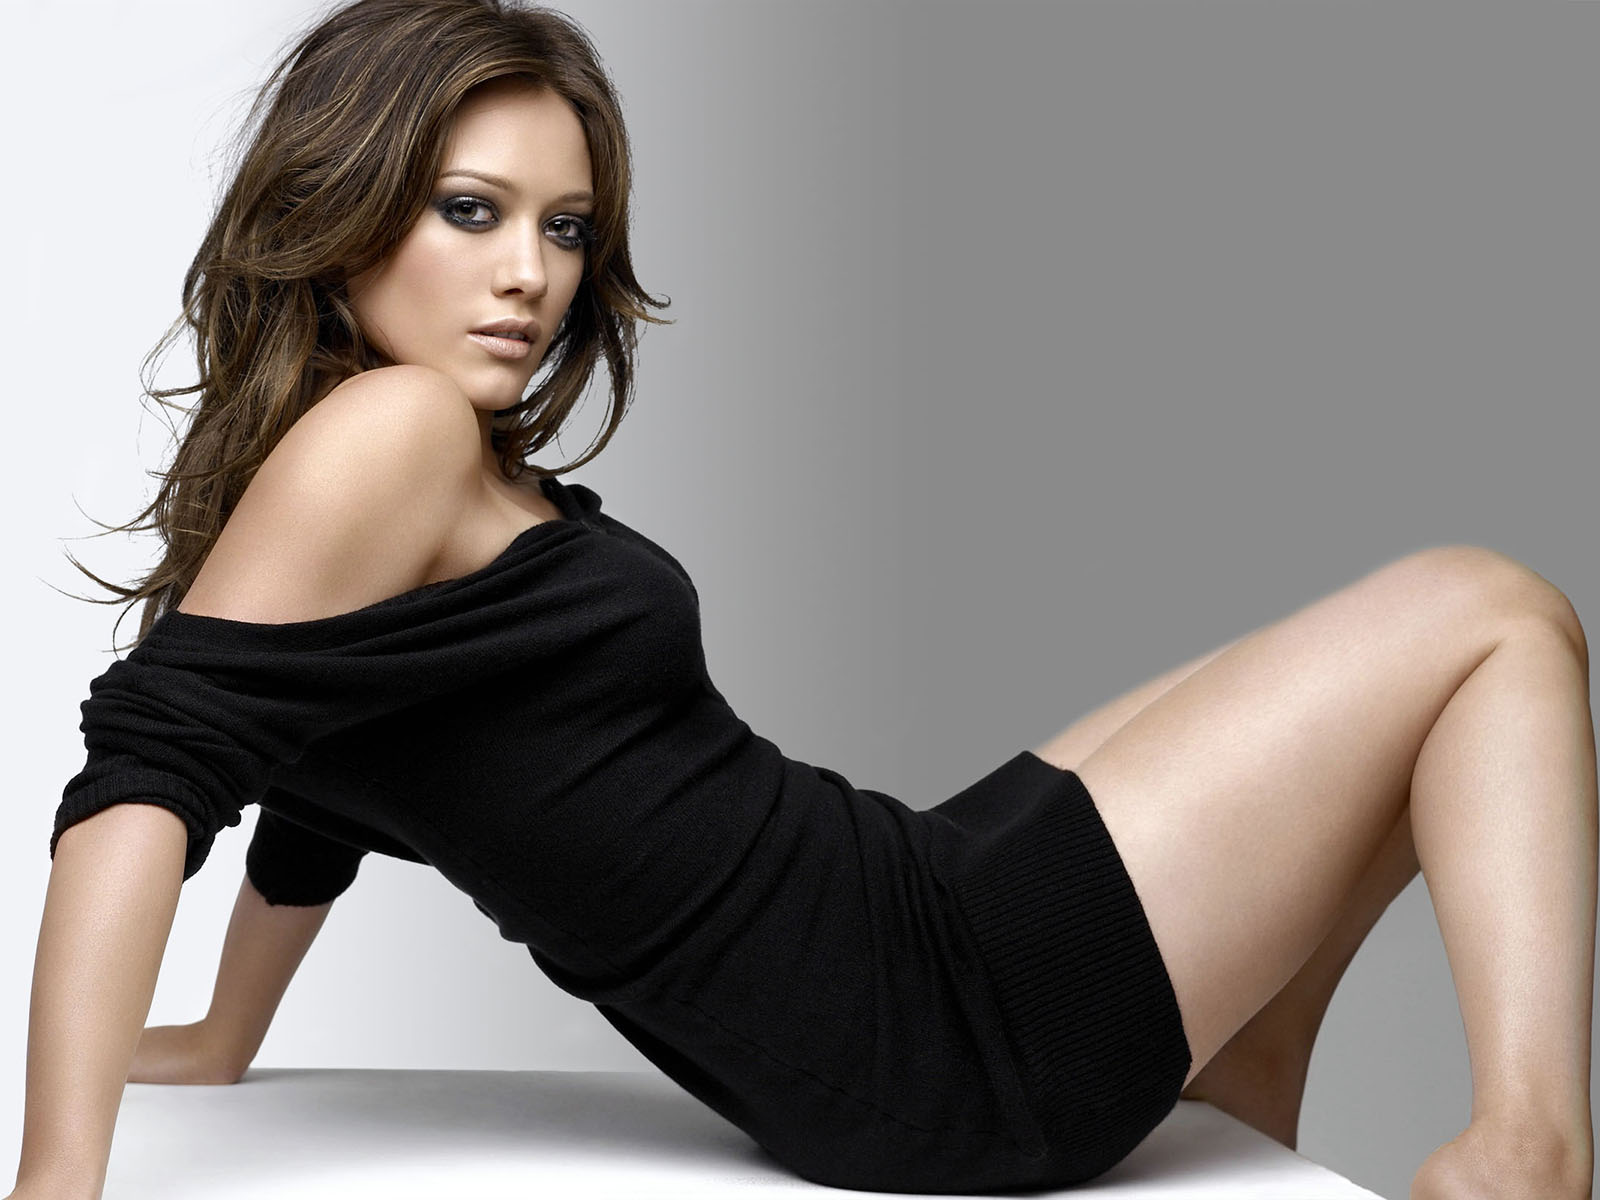 http://2.bp.blogspot.com/-Zs28tJ_F5bs/Ttb9keEOO8I/AAAAAAAAARI/bM1u6R9fFZk/s1600/Hilary-Duff-pictures-desktop-Wallpapers-HD-photo-images-2.jpg